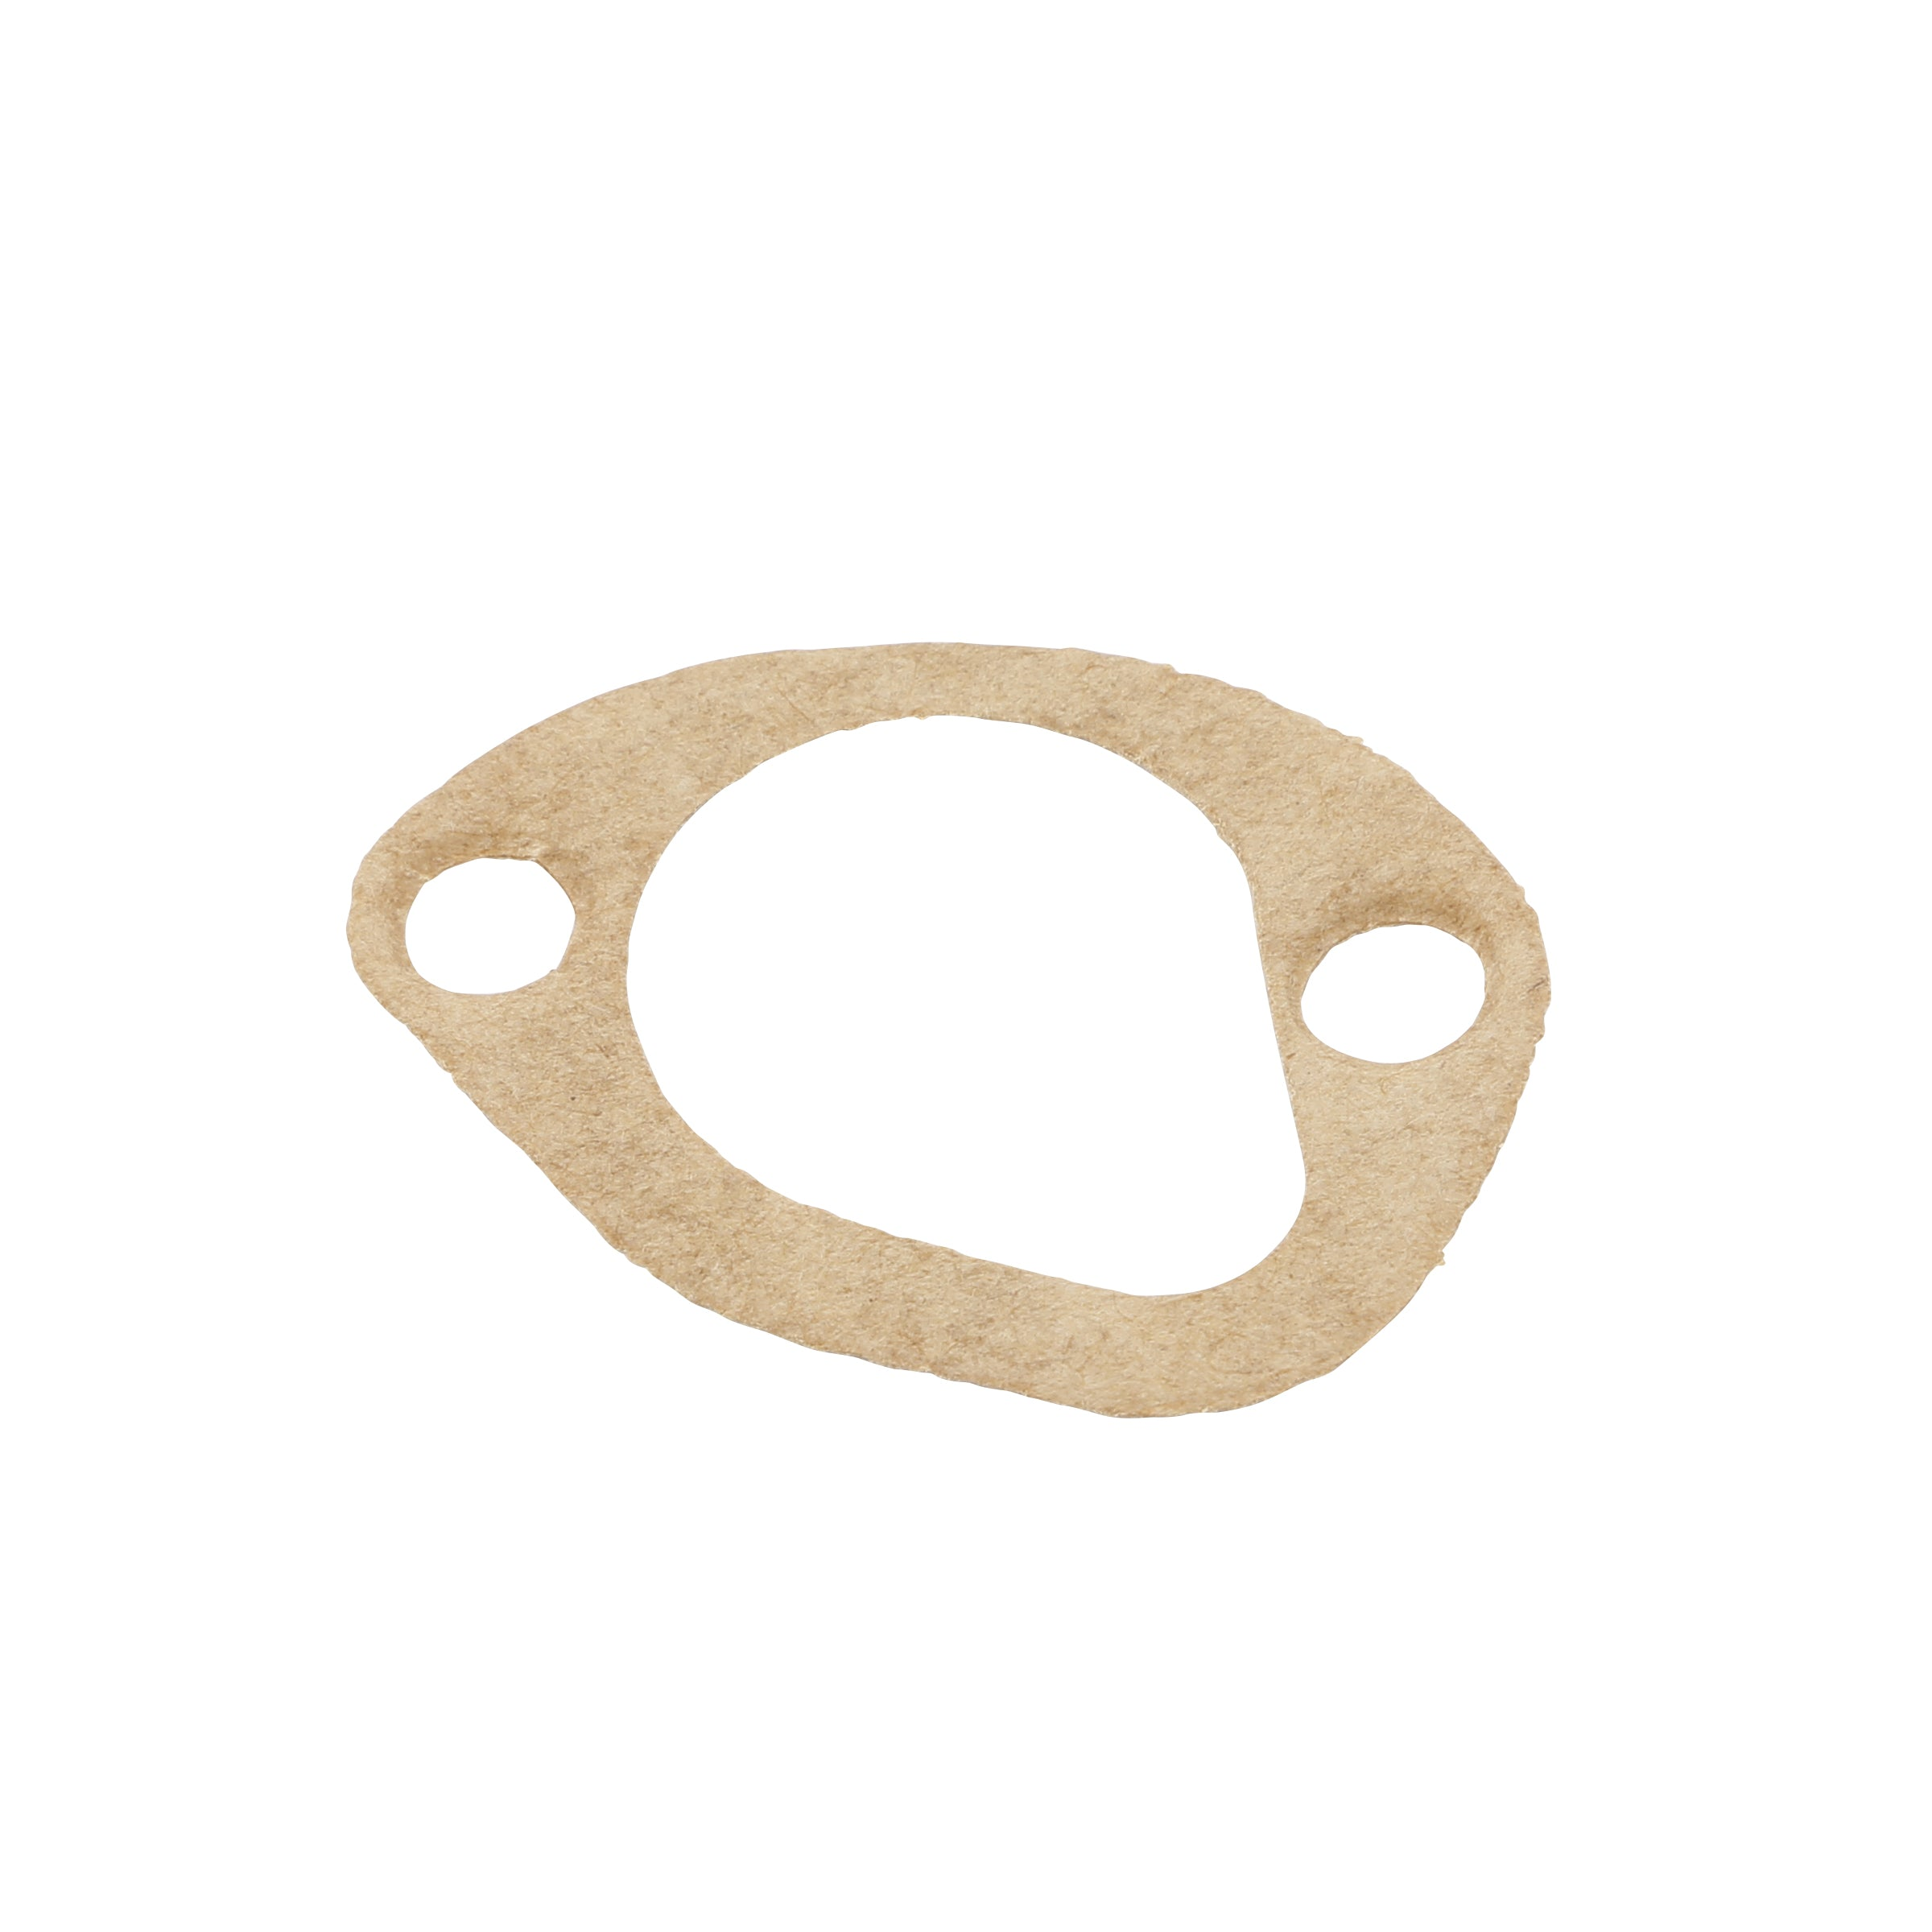 Oil Pump Screen Gasket • 1928-34 Ford